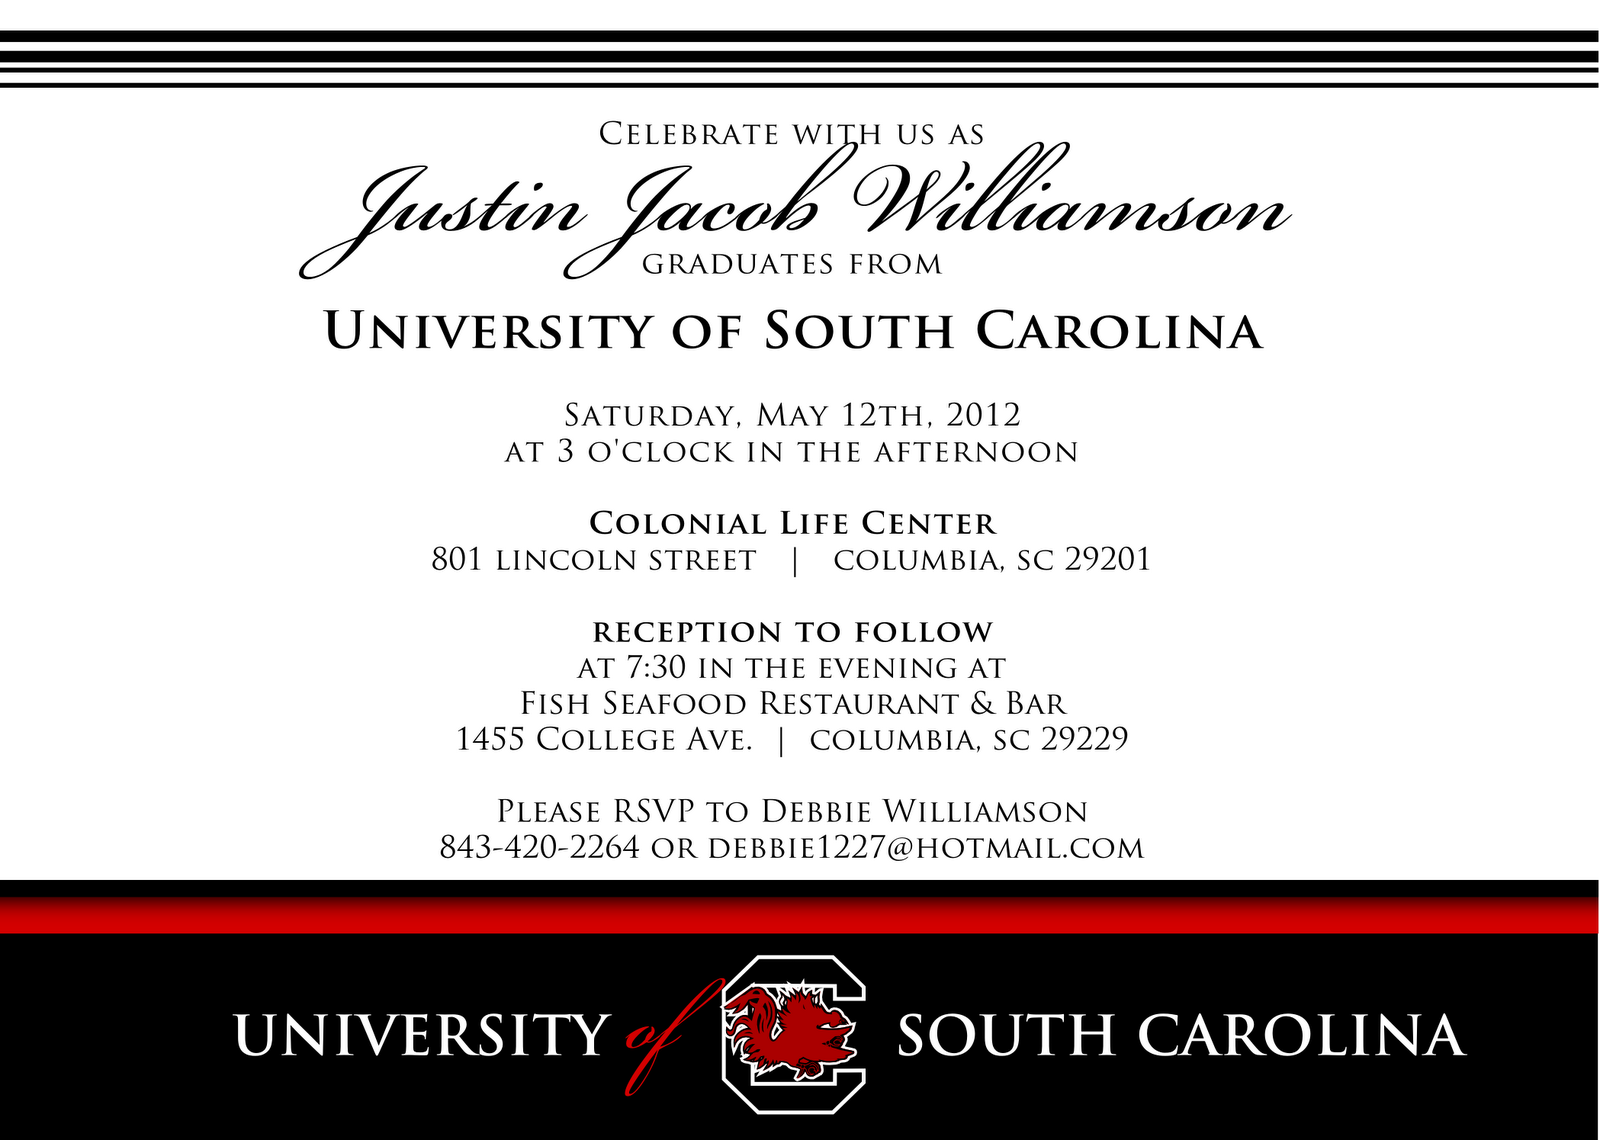 graduation ceremony invitation templates free .